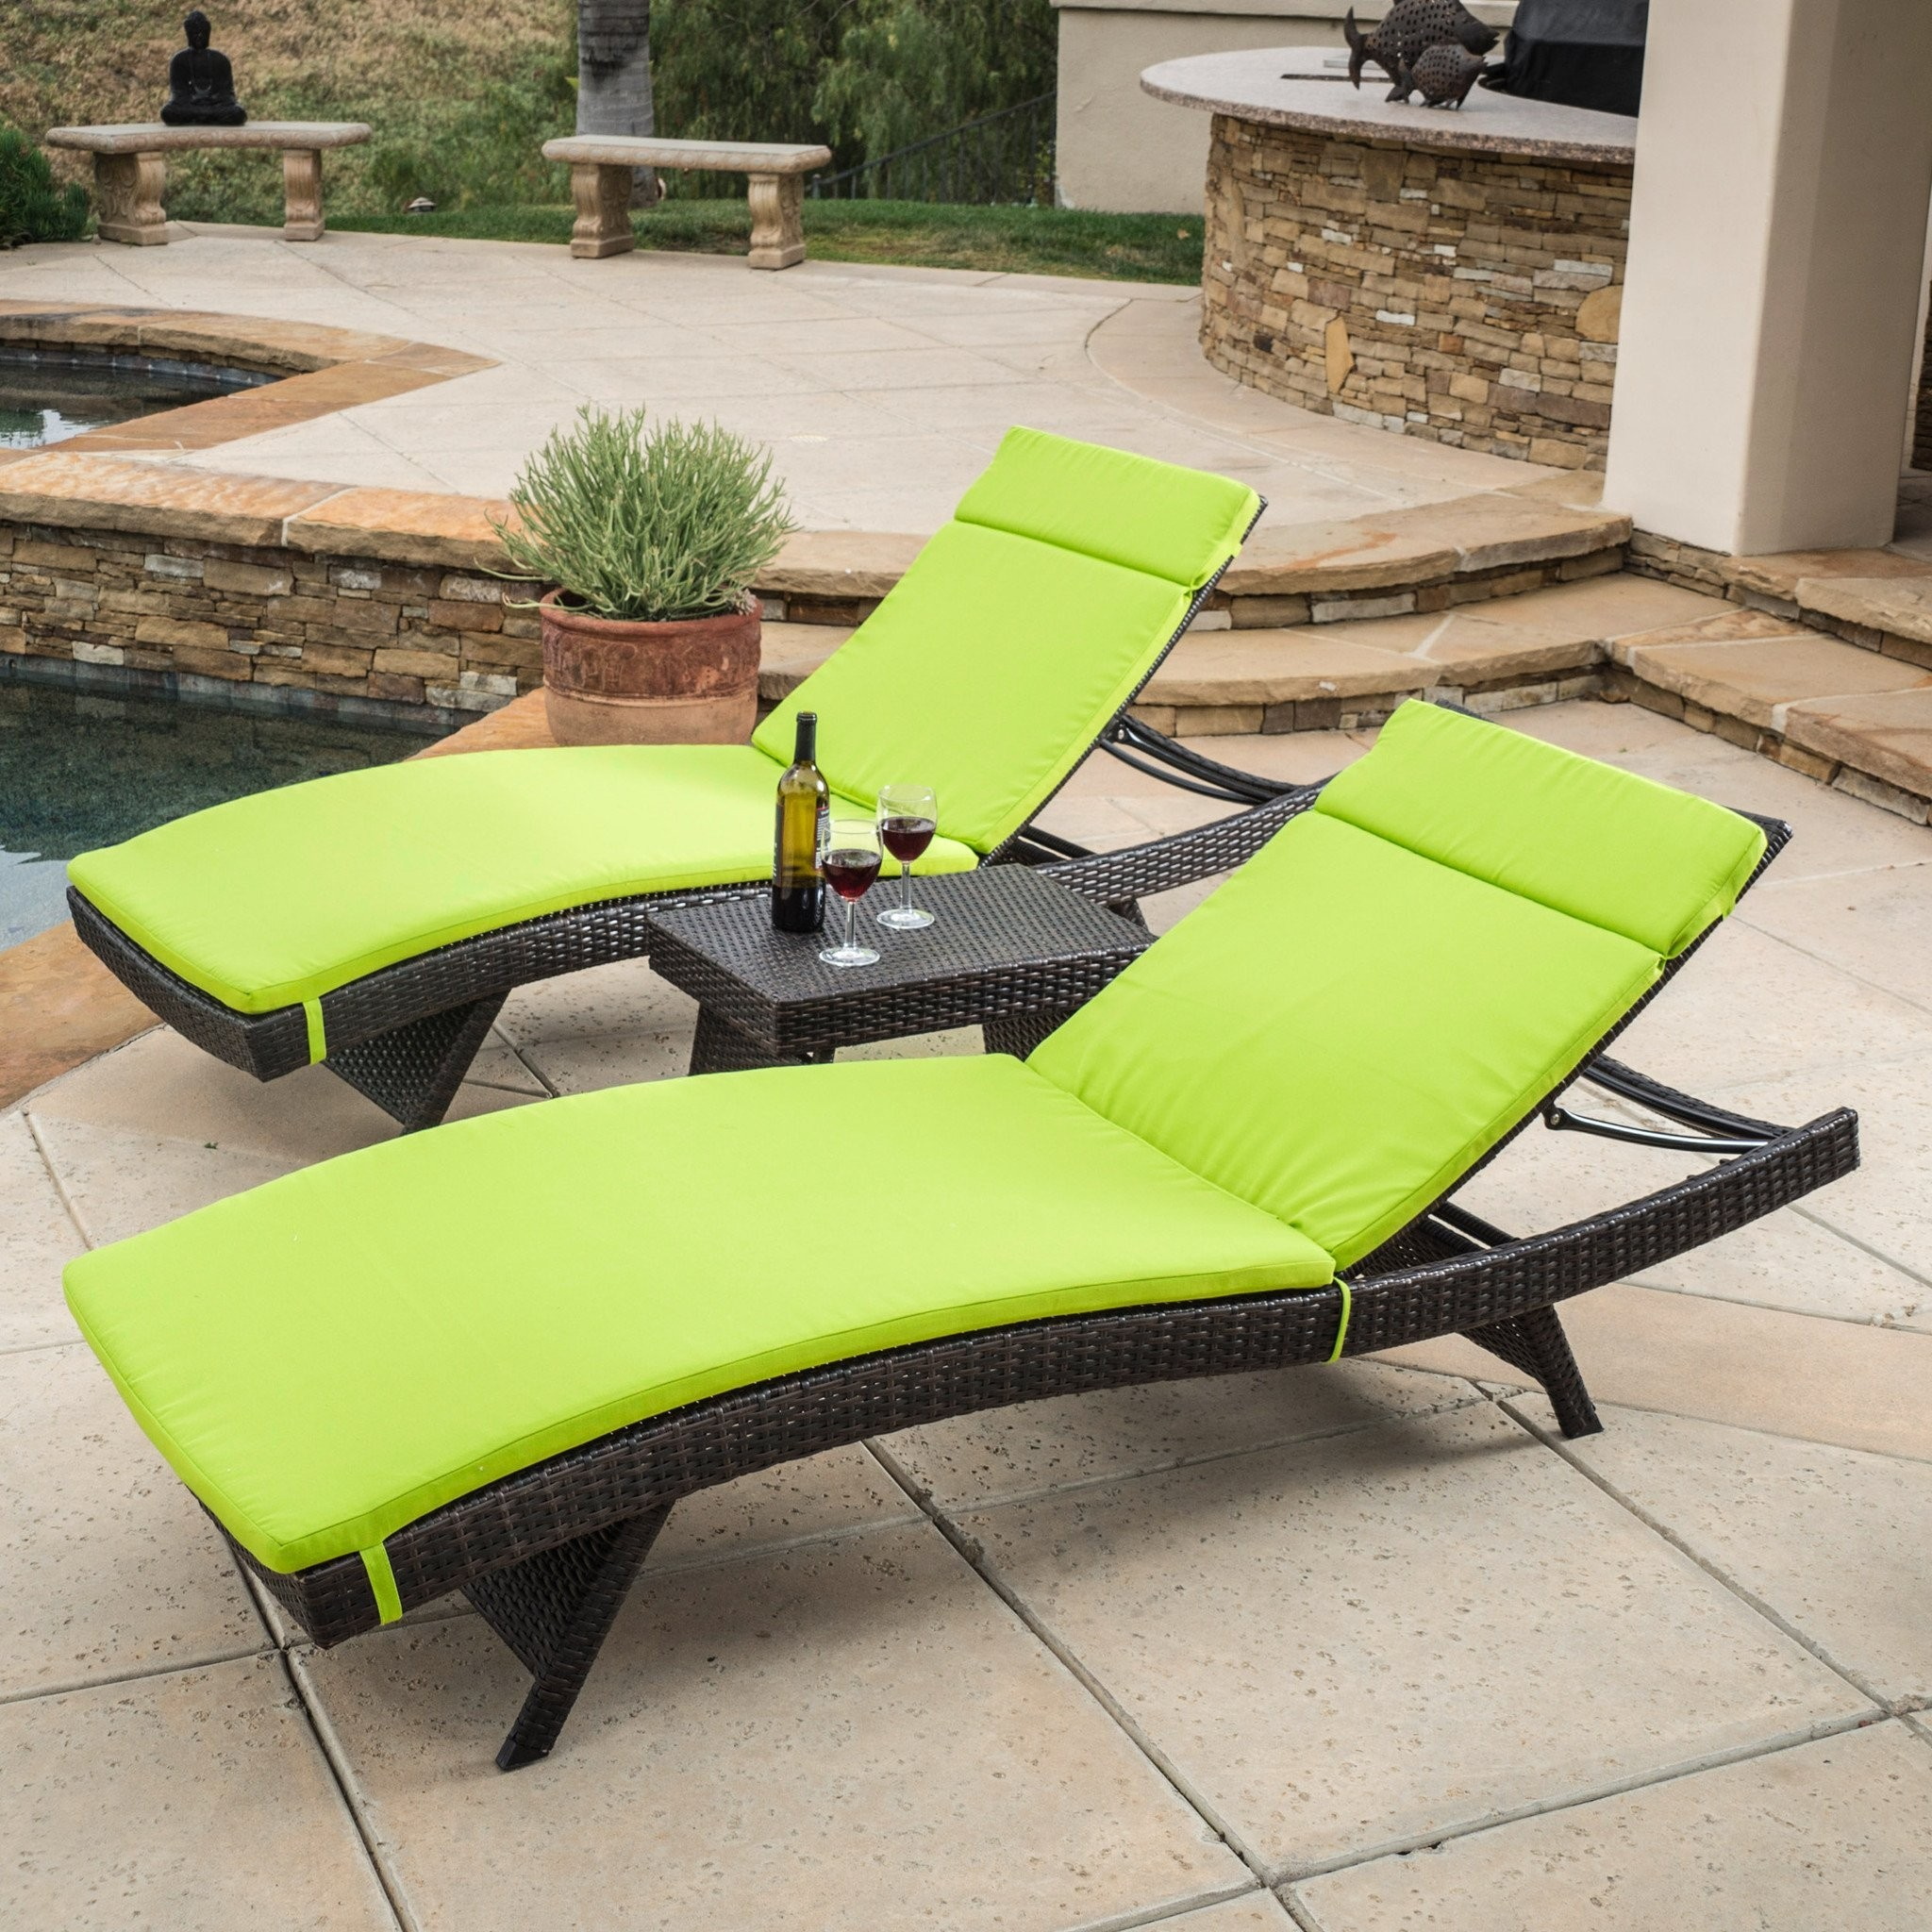 Lakeport Outdoor 3pc Adjustable Green Chaise Loung...